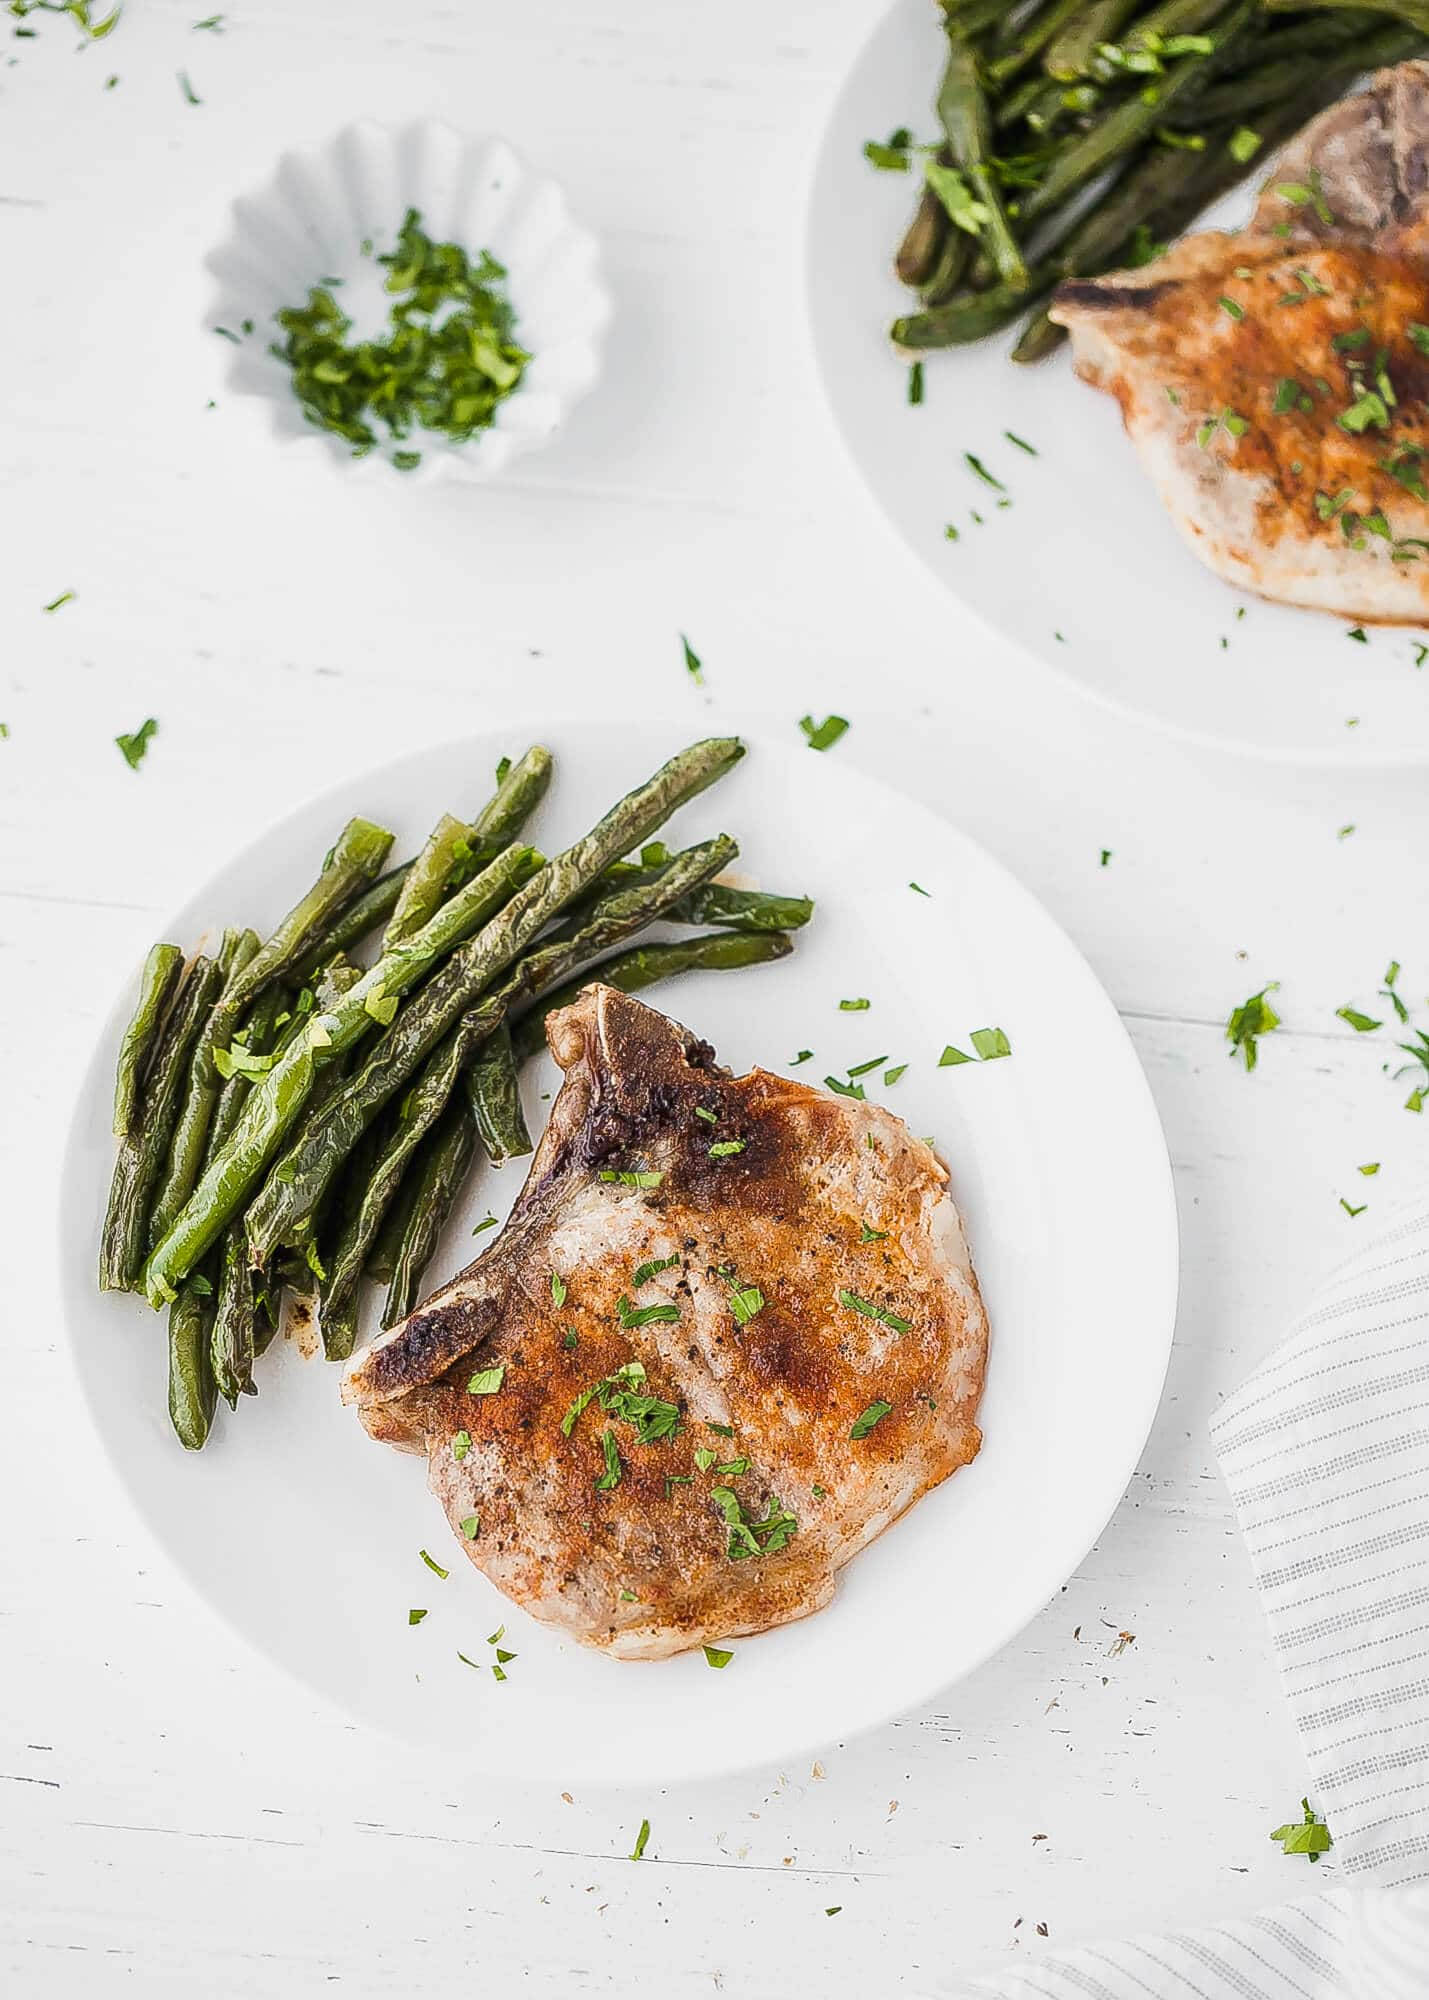 Oven Baked Bone-In Pork Chops Recipe - juicy, tender pork chops, seasoned with flavorful four ingredient dry rub and quickly baked in the oven to perfection. A quick, simple and effortless weeknight meal for busy people. These baked pork chops are served with a side of baked green beans, but any vegetable of your choice can be added instead of green beans.